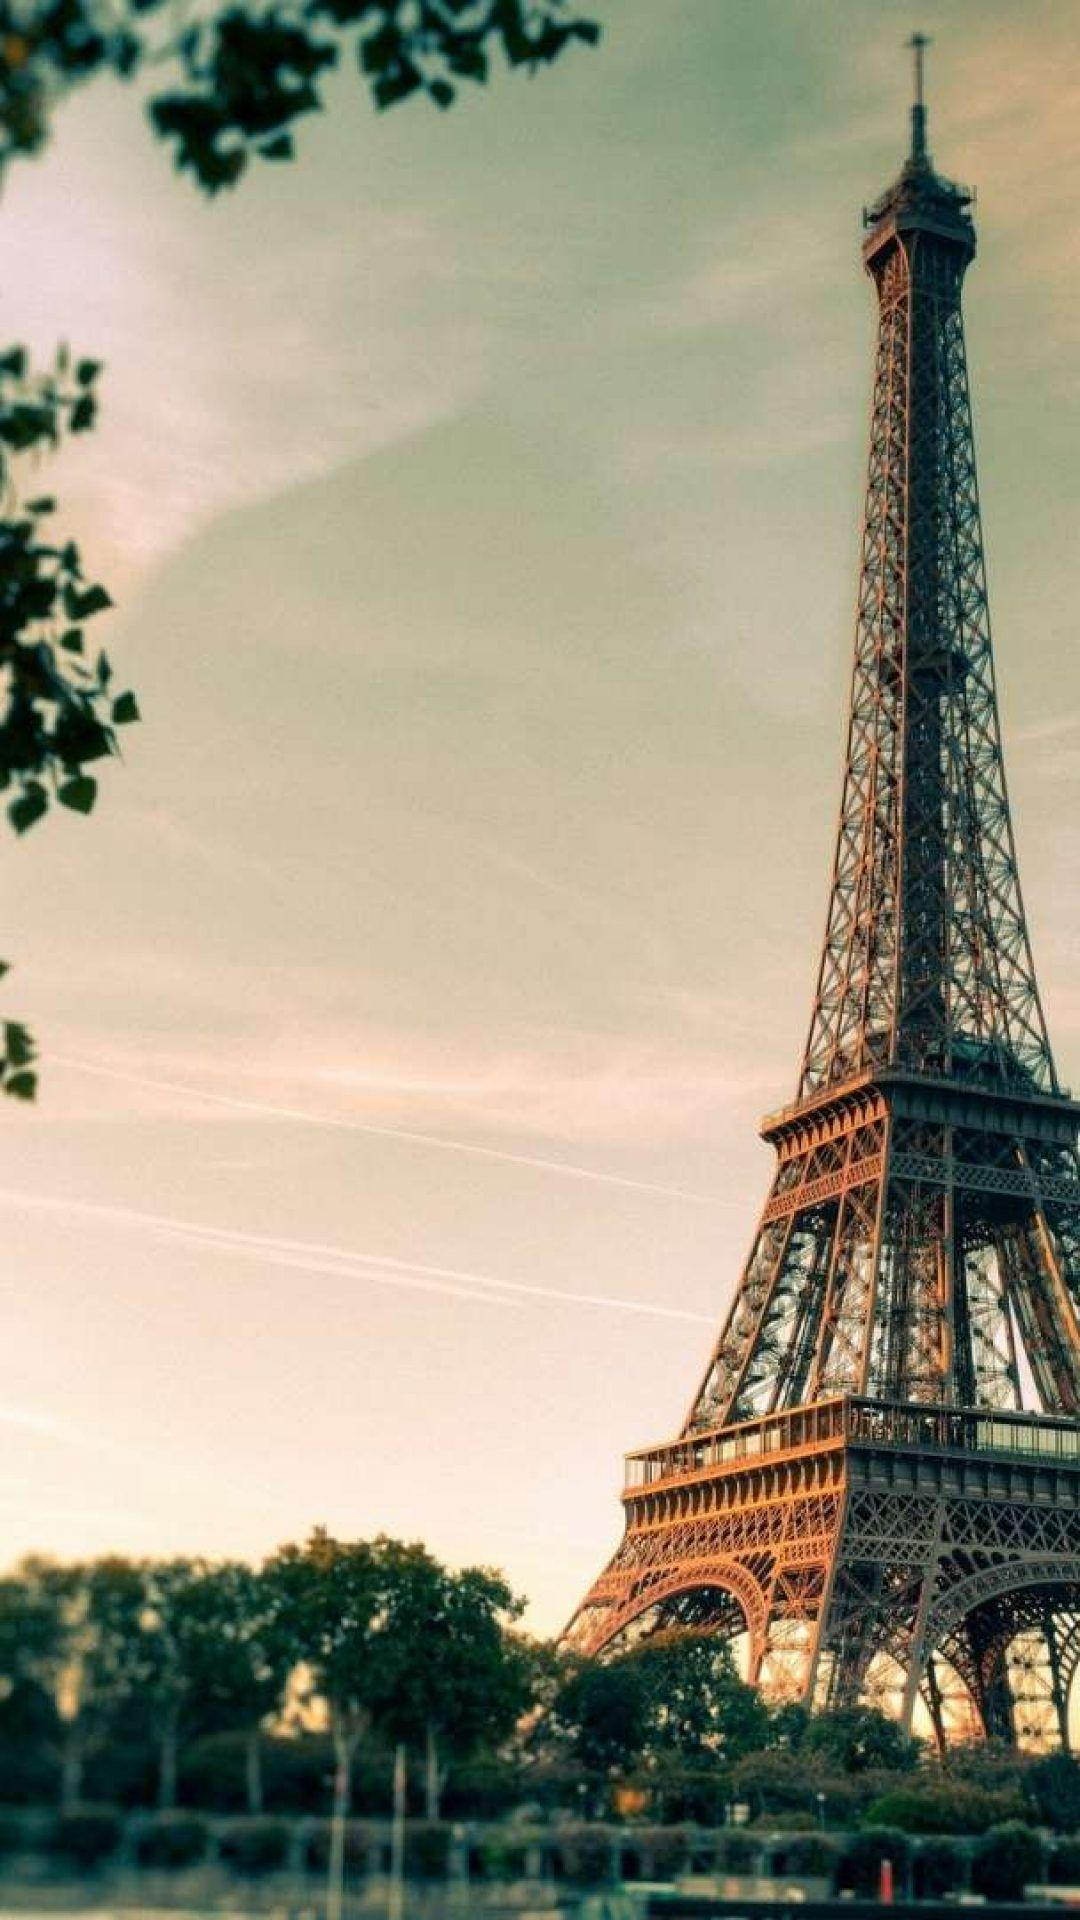 Eiffel tower hd wallpapers wallpaper cave eiffel tower hd wallpaper download hd wallpapers voltagebd Gallery